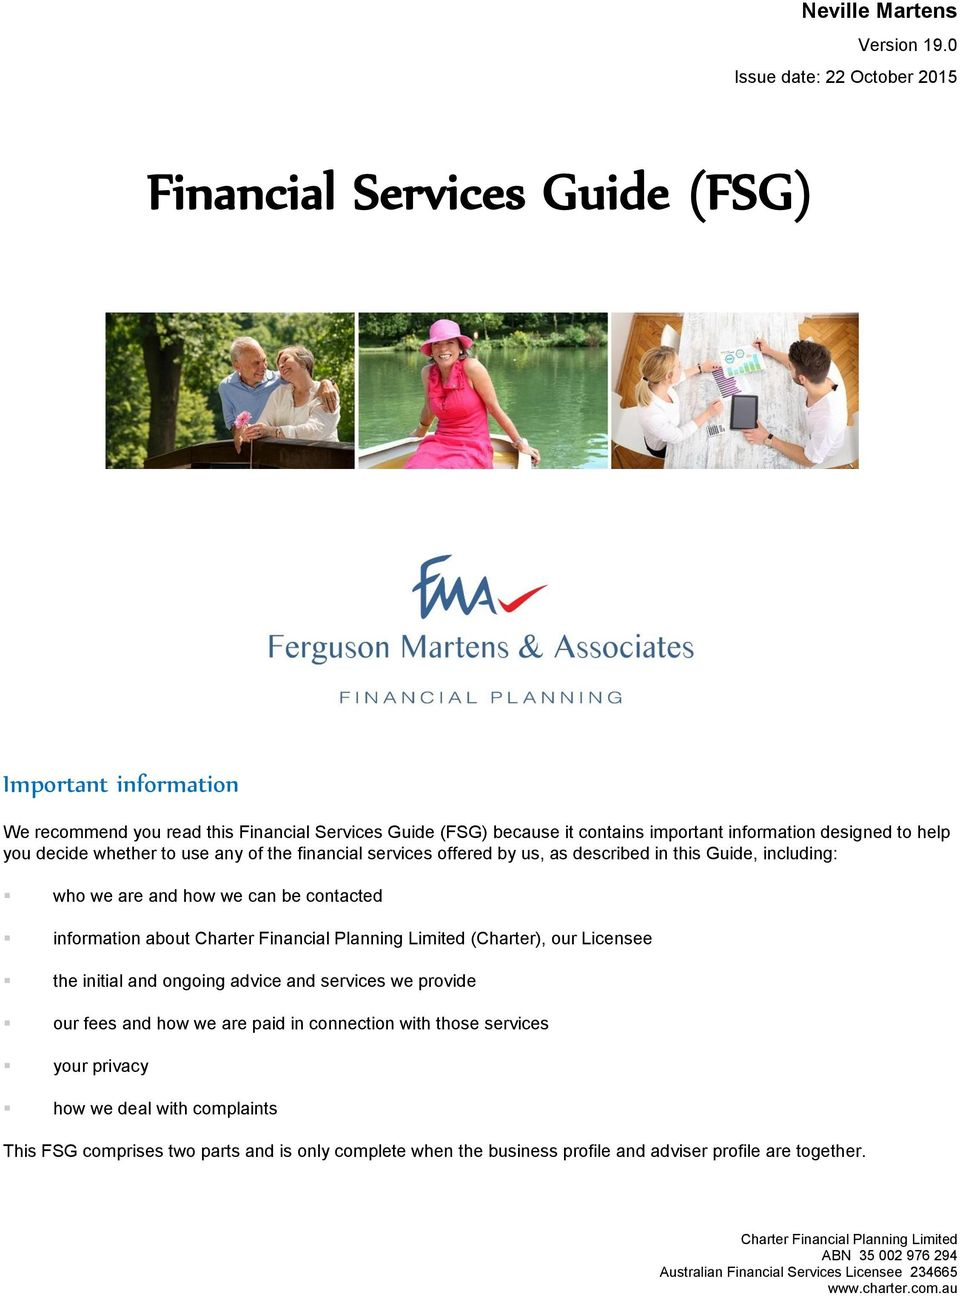 you decide whether to use any of the financial services offered by us, as described in this Guide, including: who we are and how we can be contacted information about Charter Financial Planning